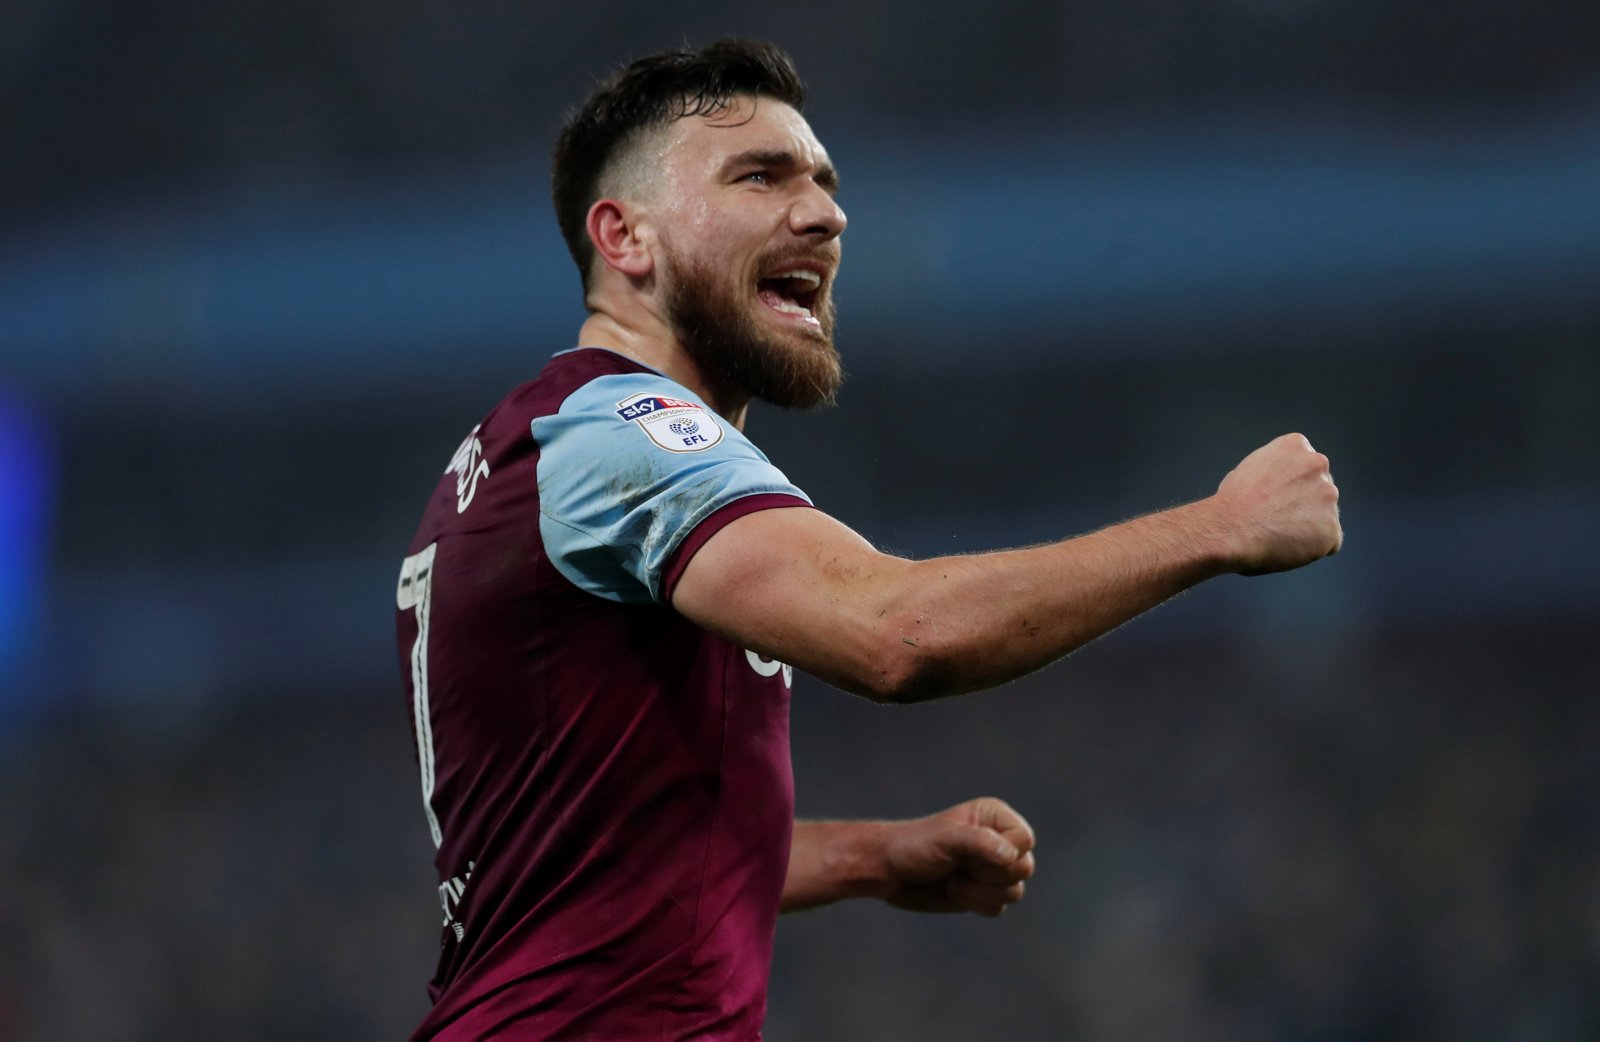 West Ham fans on Twitter were over the moon for Snodgrass with first league goal